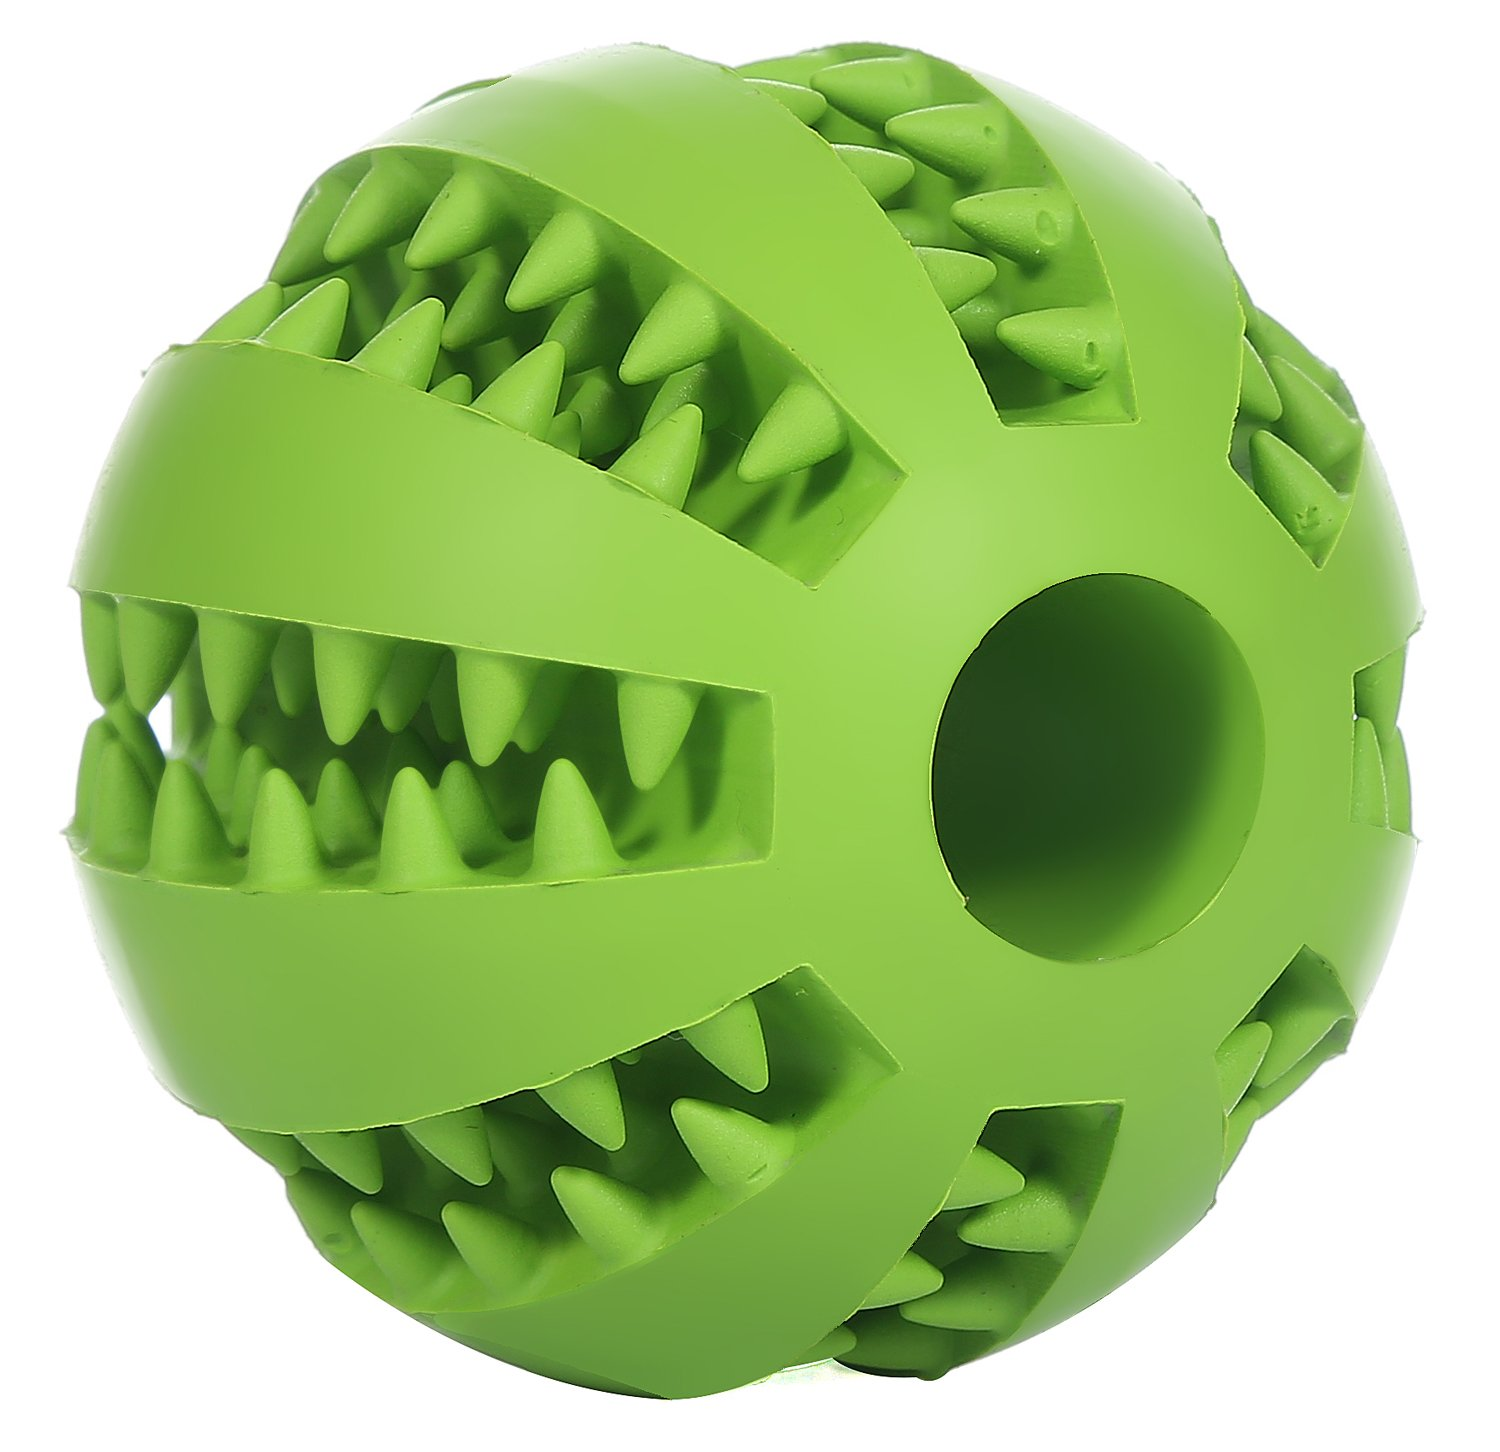 GeLivable Dogs Cats Playing Chewing Iq Training Tooth Cleaning Ball Interactive Treats Rubber Ball Pet Toys,Green